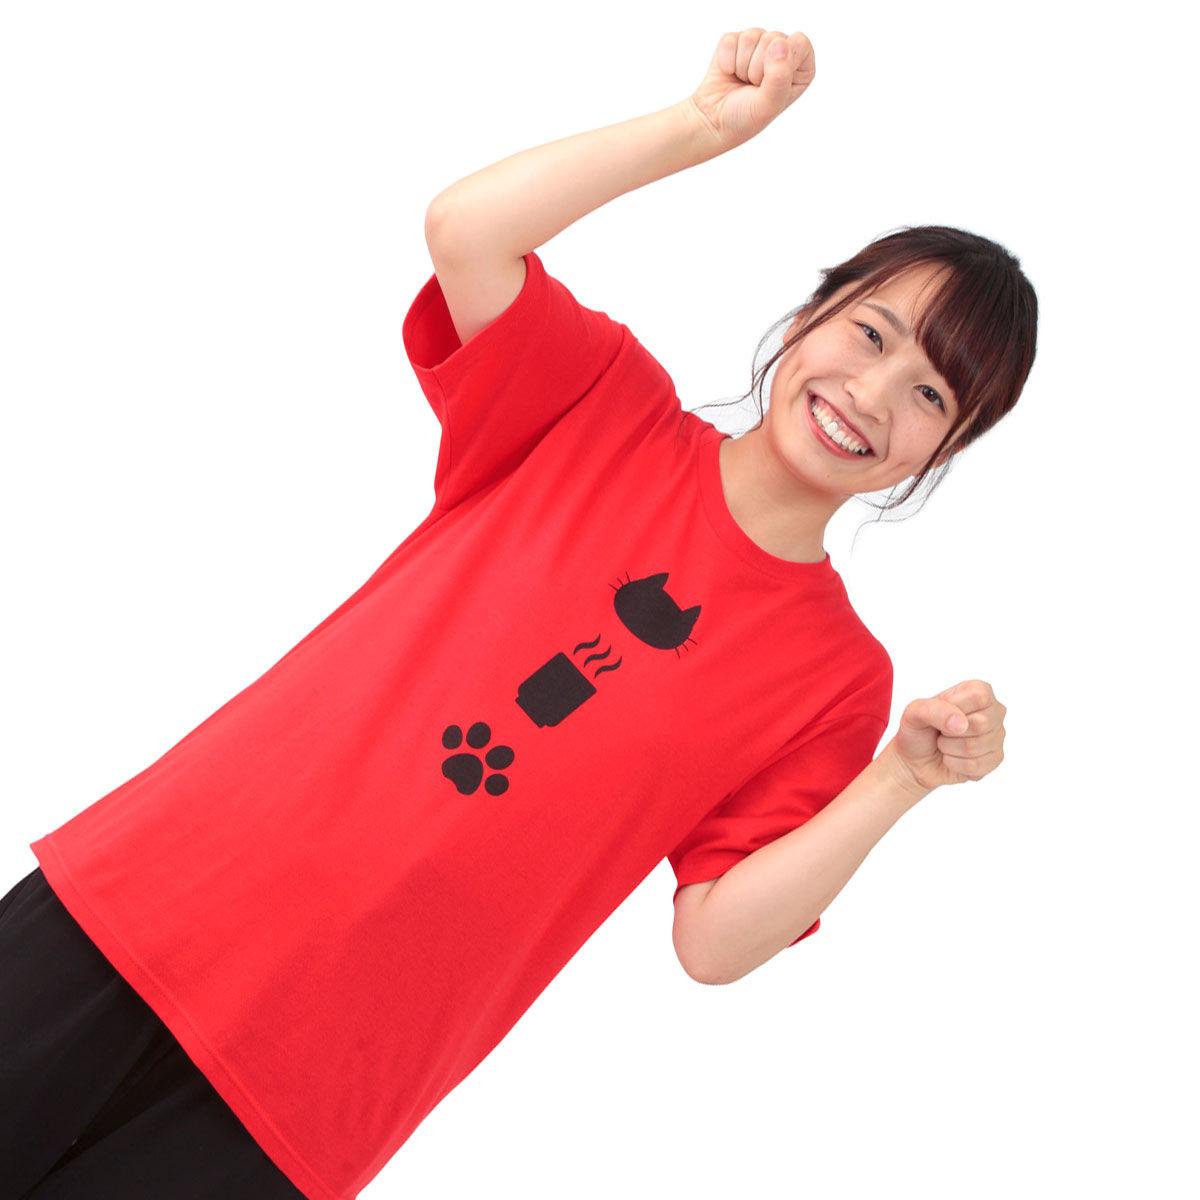 Ultraman R/B UshioMinato selected T-shirts Nancyatte(Just Joking)